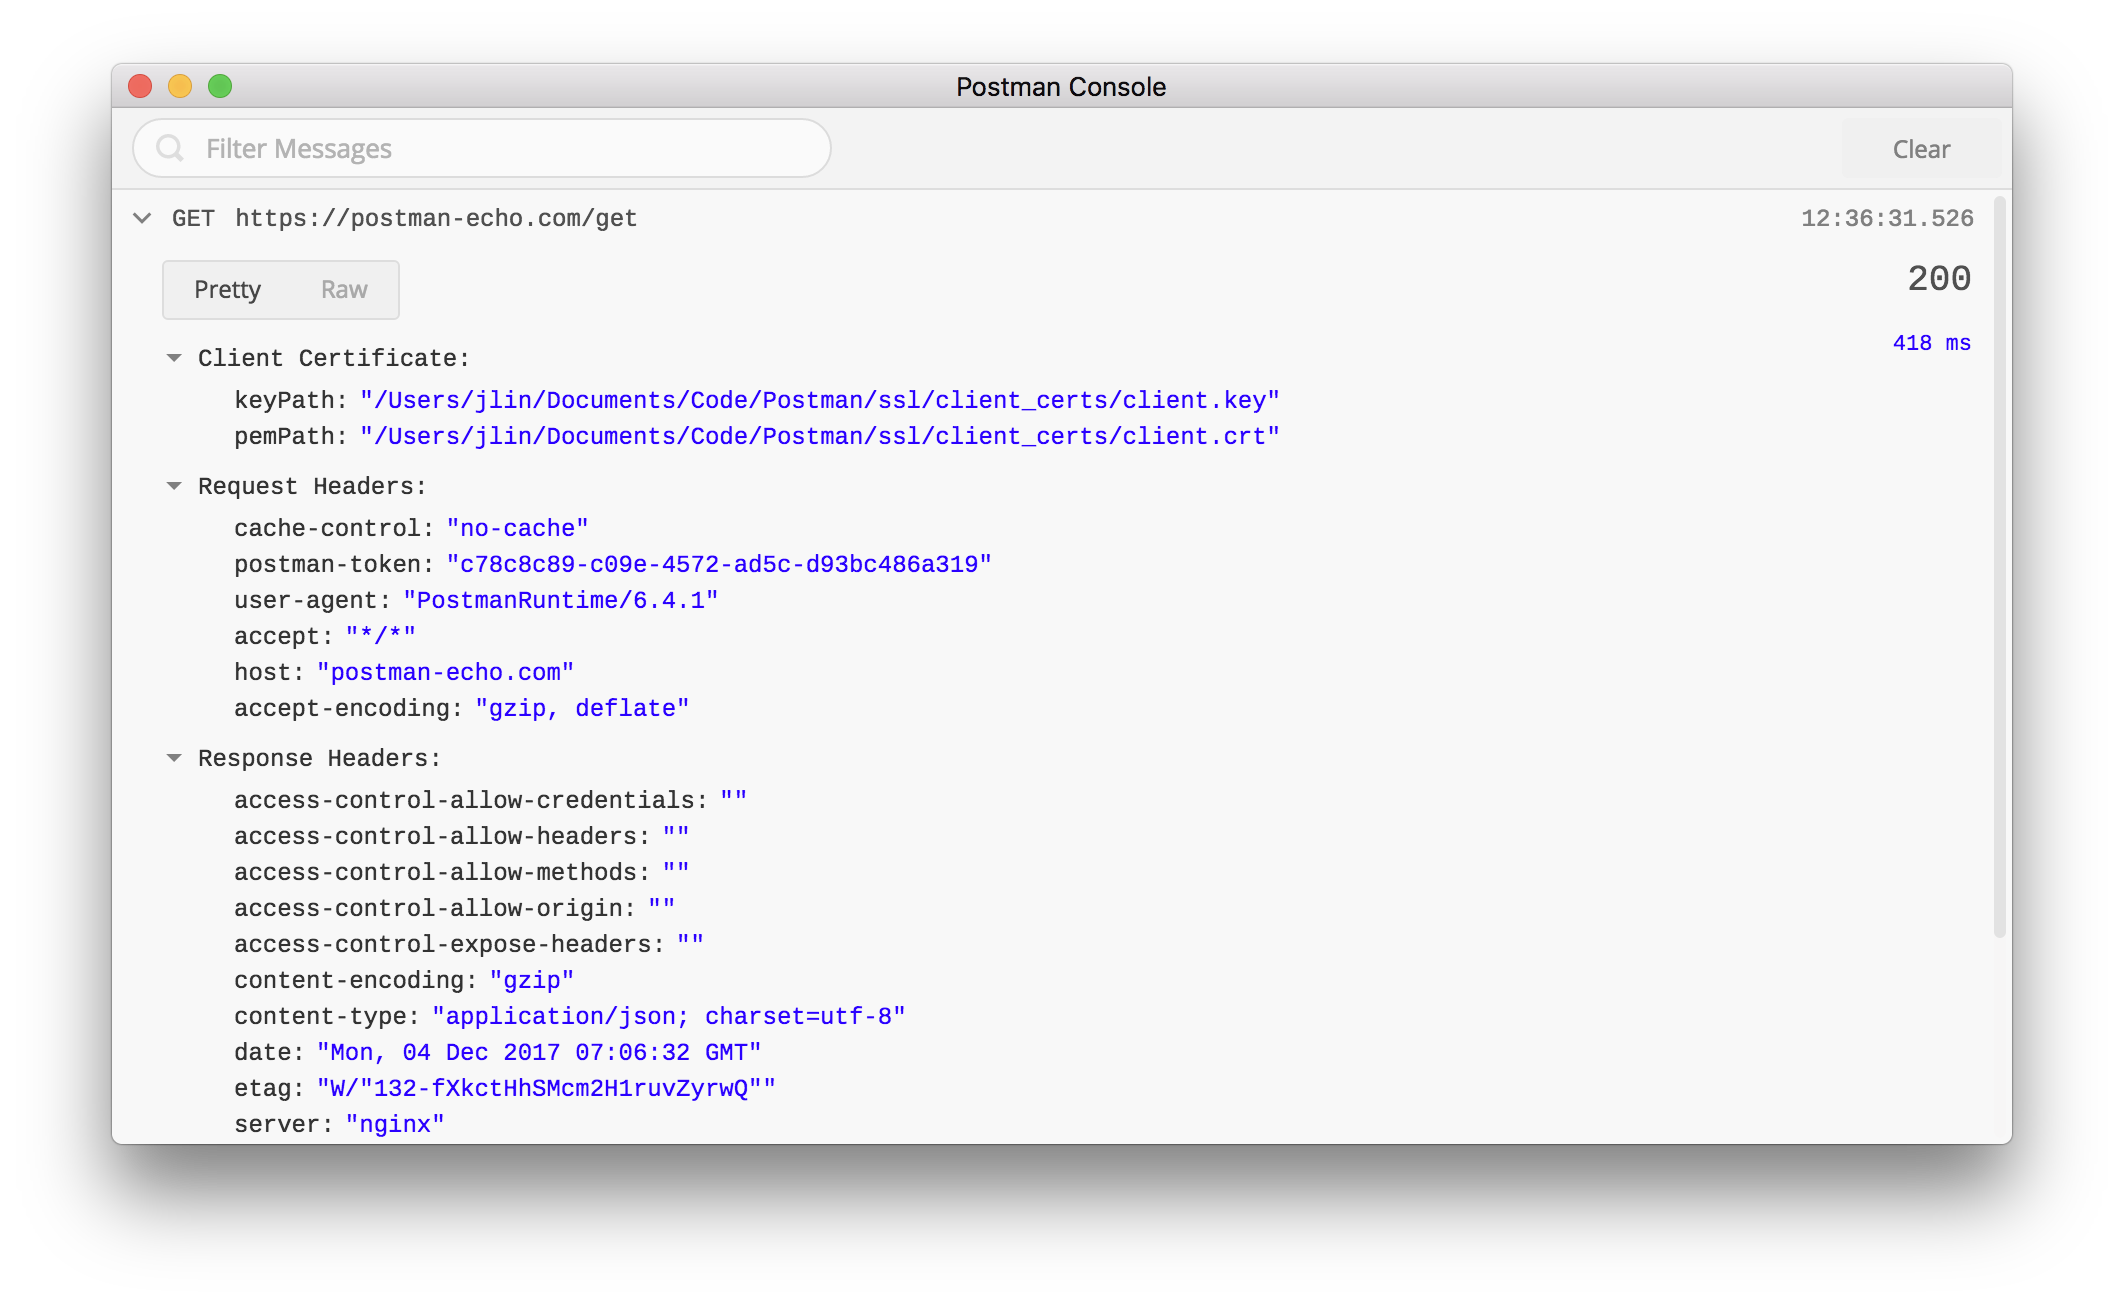 Set and view SSL certificates with Postman - Postman Blog